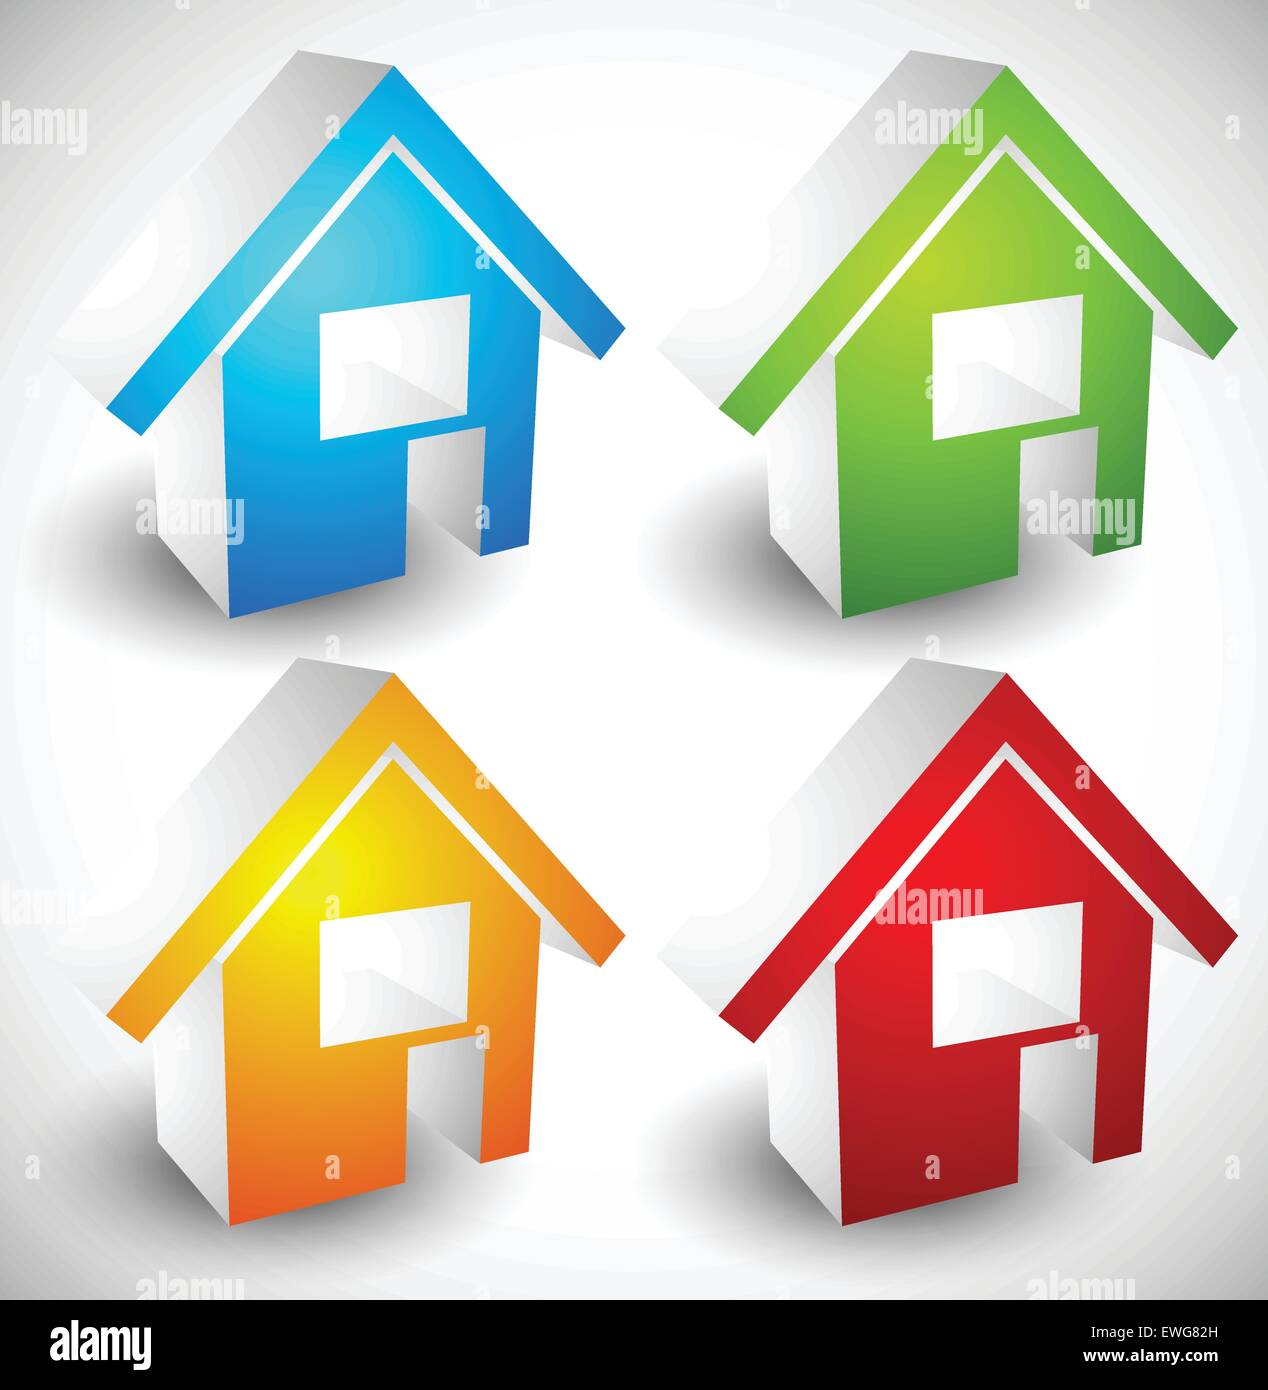 3d House Home Symbols Icons In 4 Colors Illustration For Real